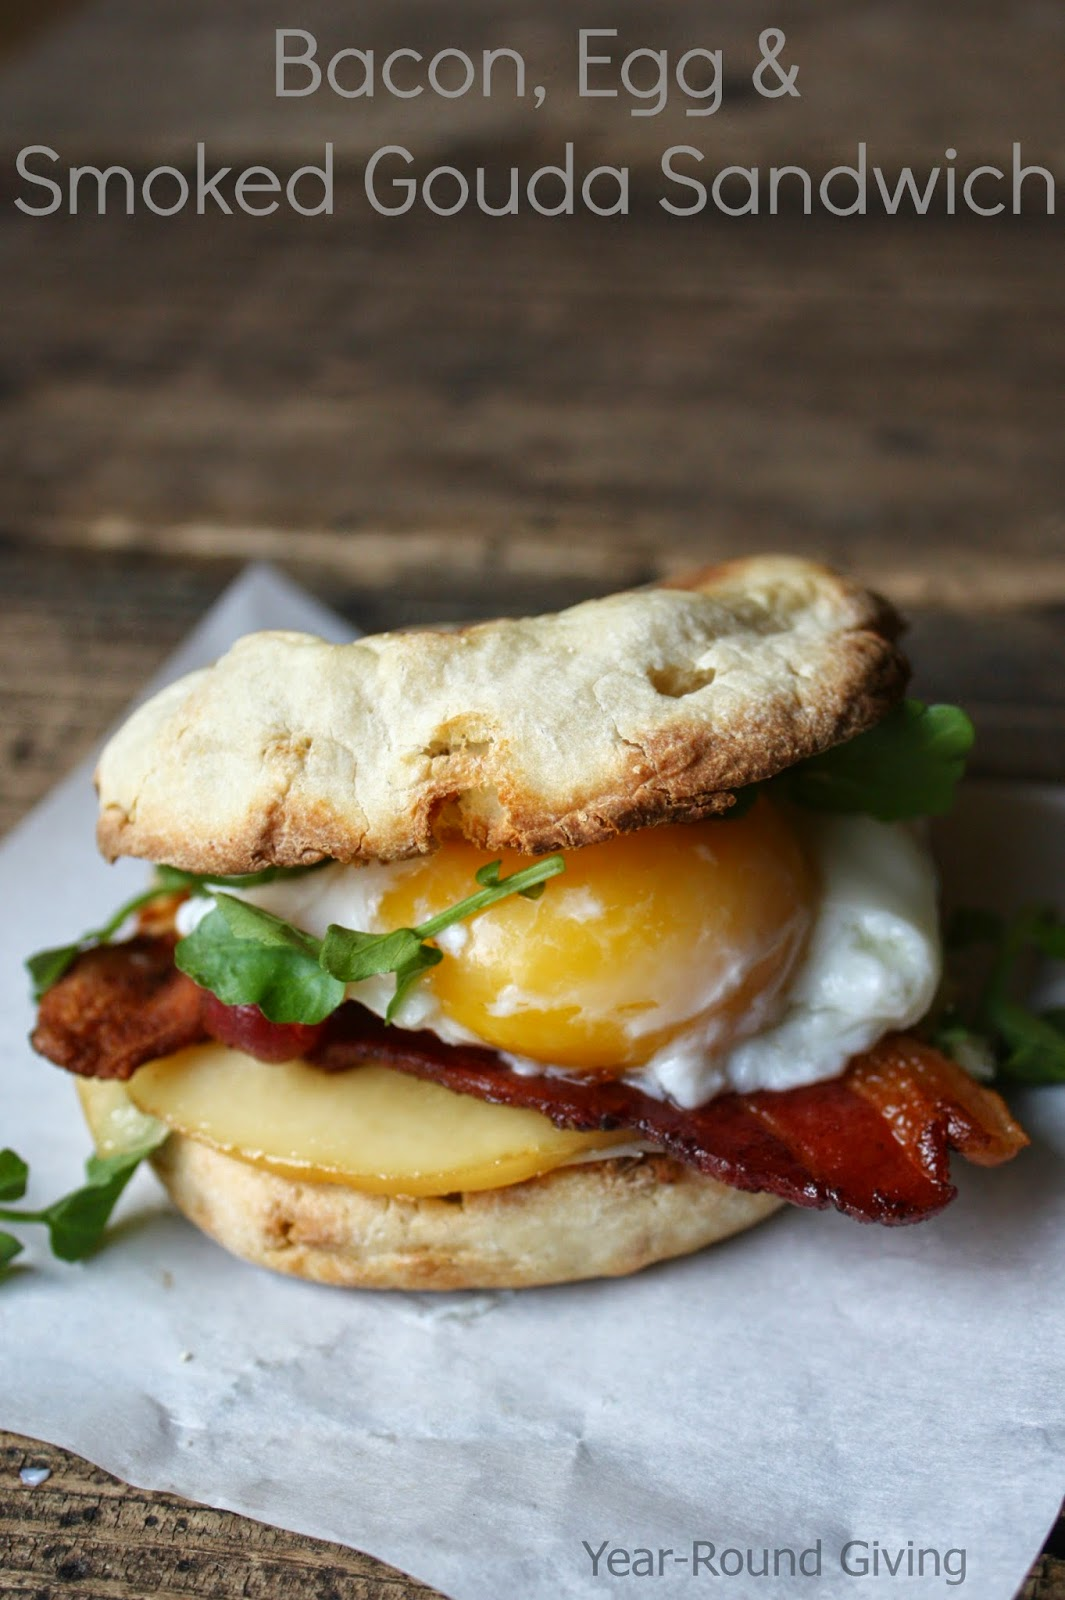 Bacon, Egg & Smoked Gouda Breakfast Sandwich